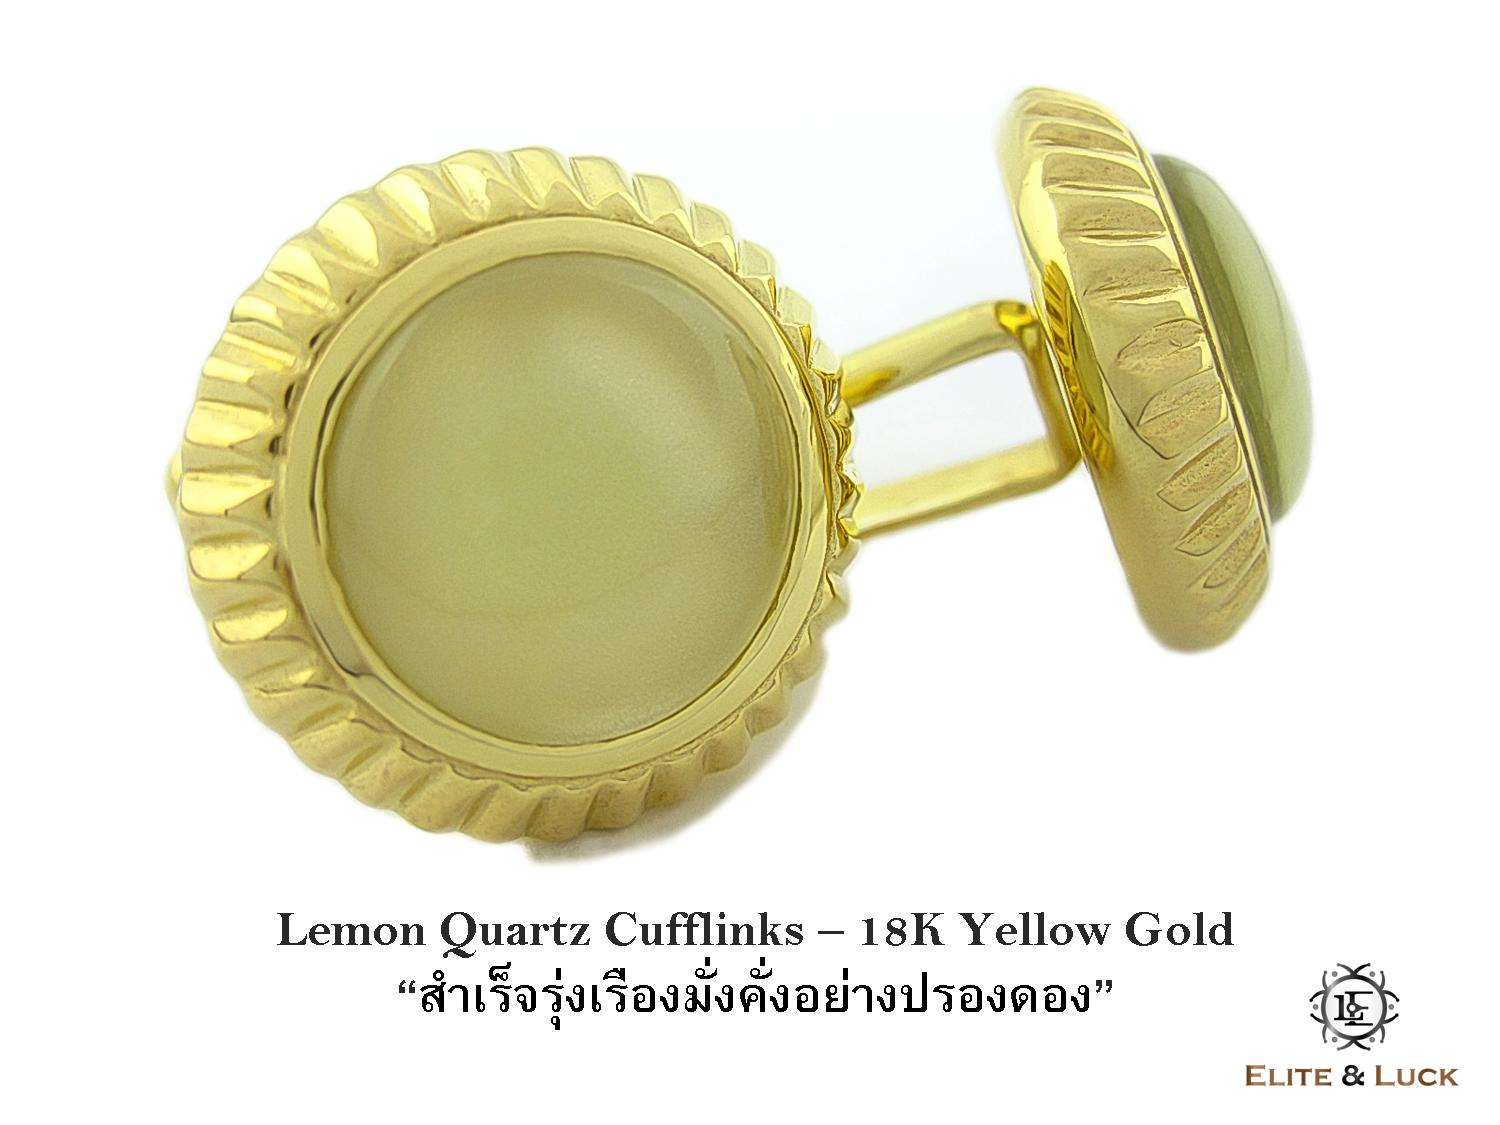 Lemon Quartz Sterling Silver Cufflinks สี 18K Yellow Gold รุ่น Elegant